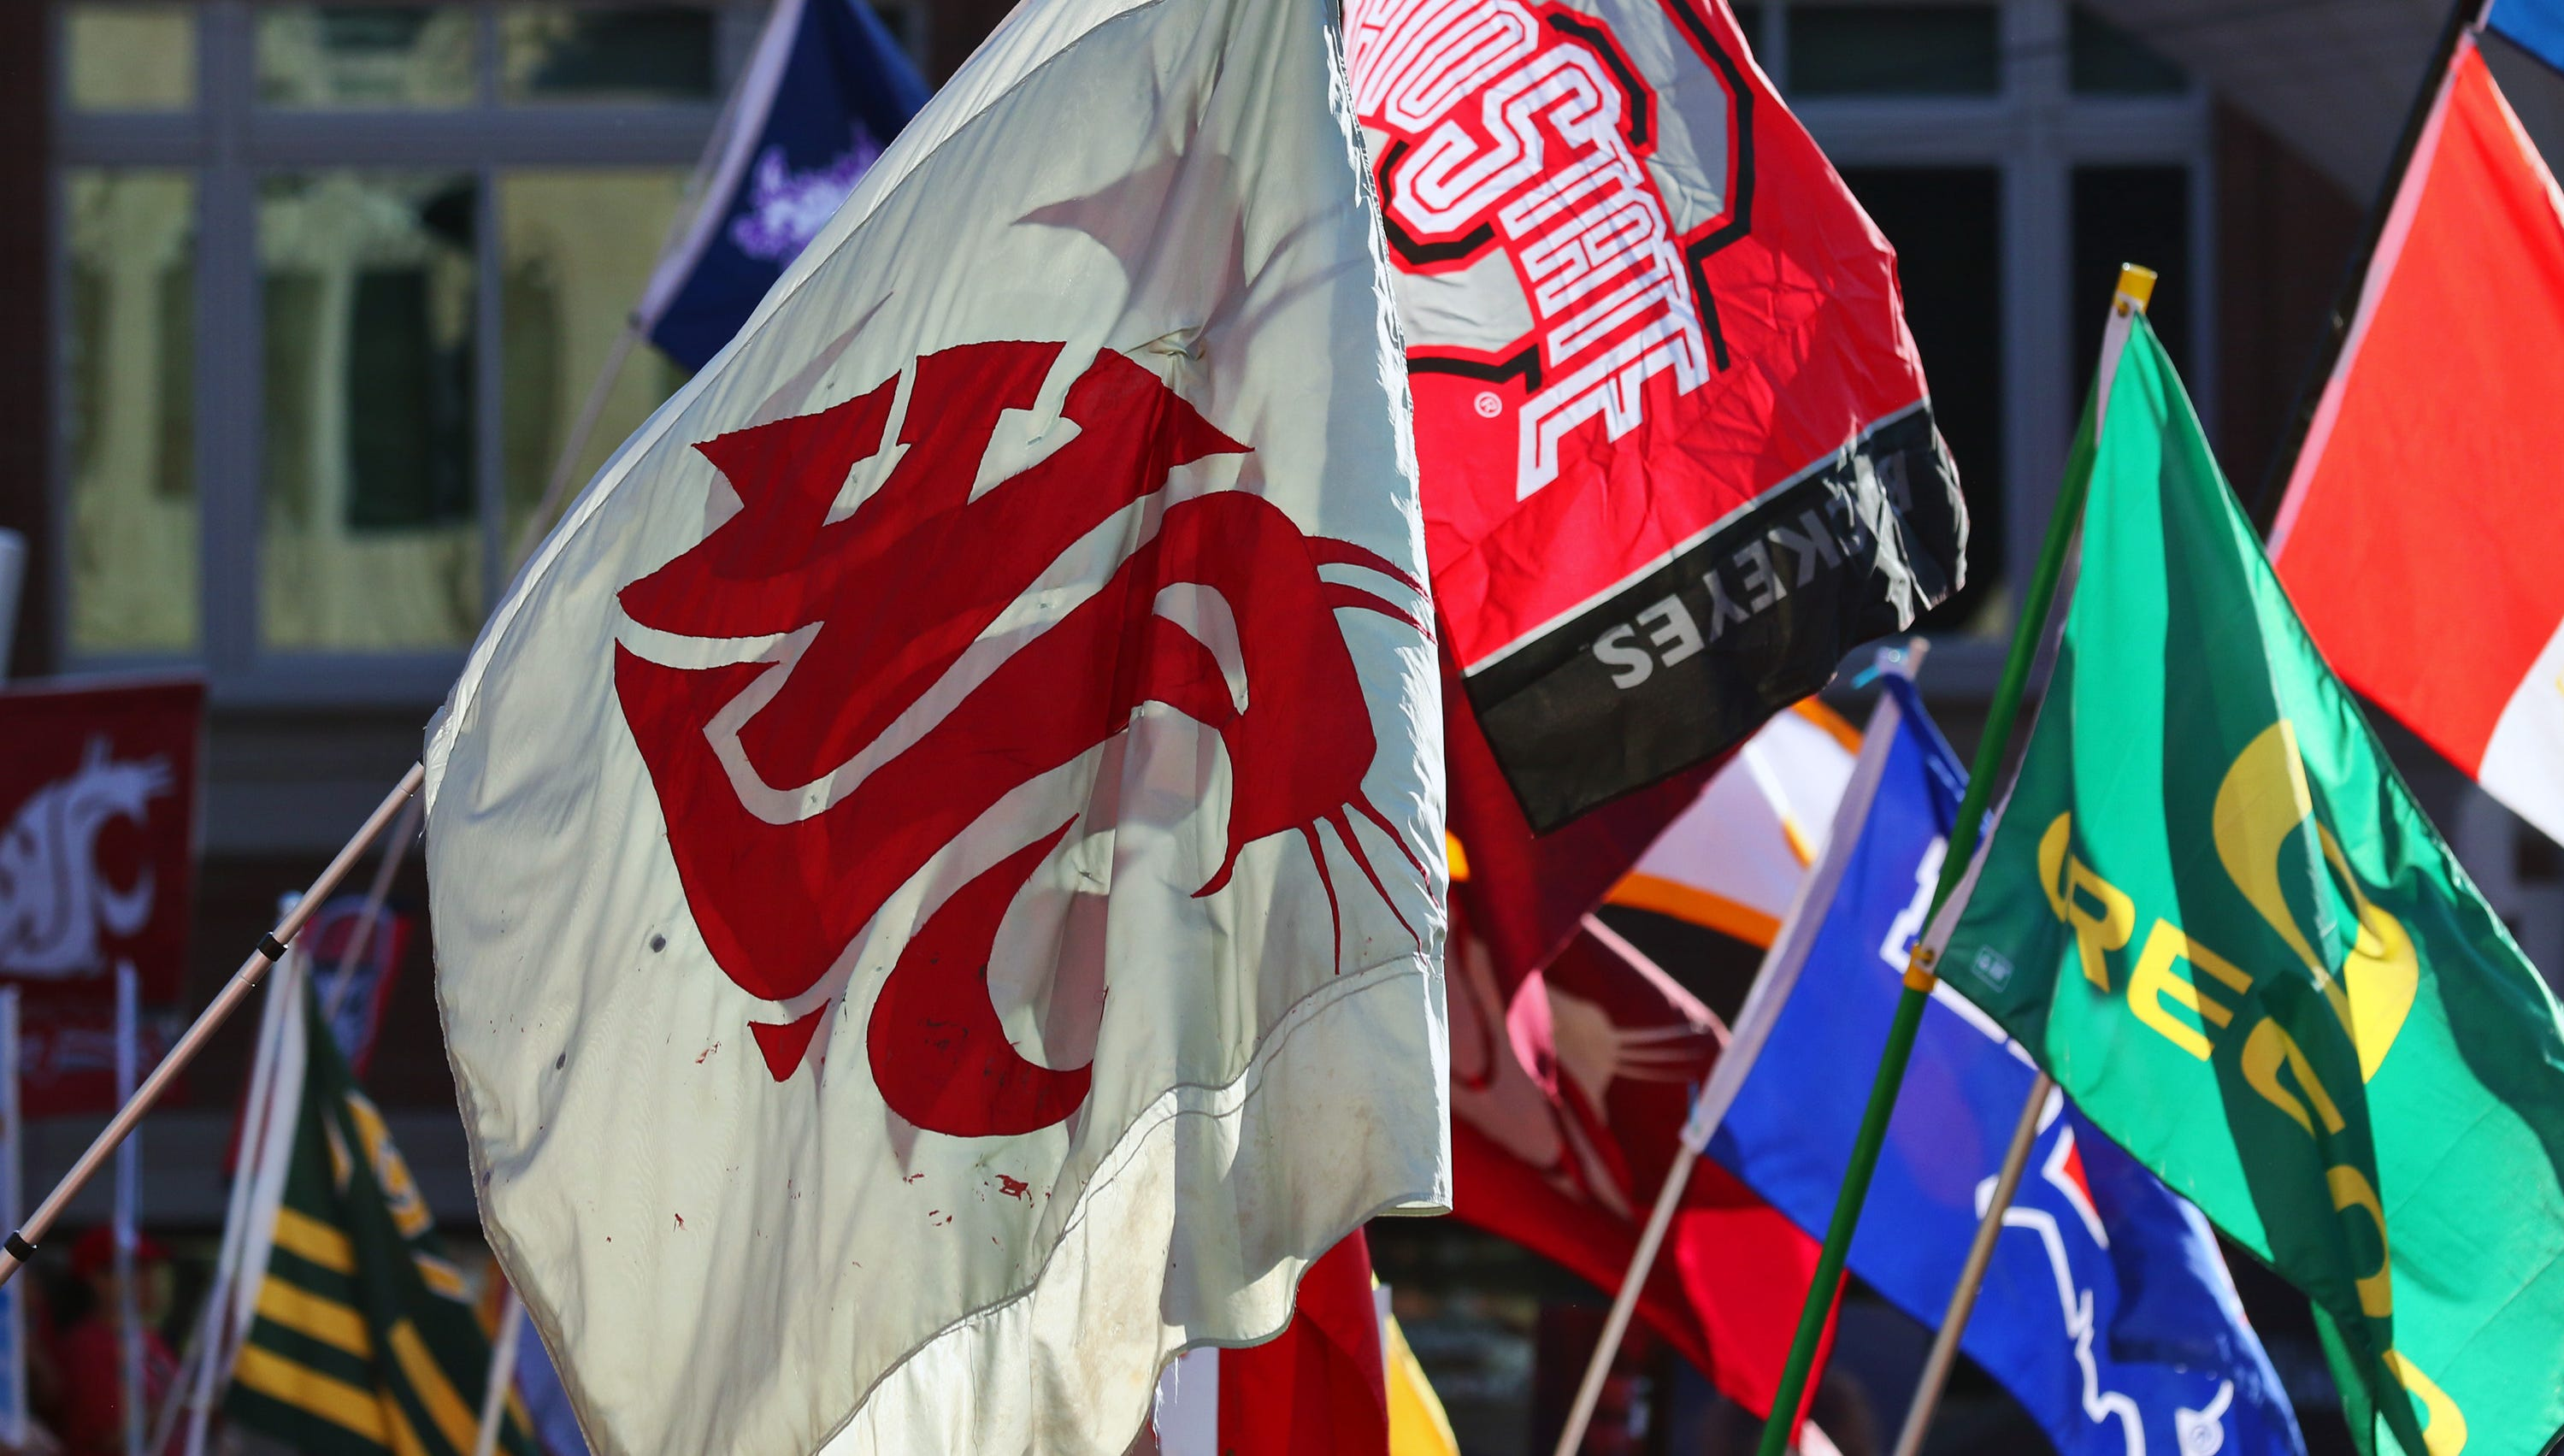 A Washington State flag has flown at every ESPN College GameDay broadcast for 15 years. On Saturday, for the first time, it will do so in Pullman.